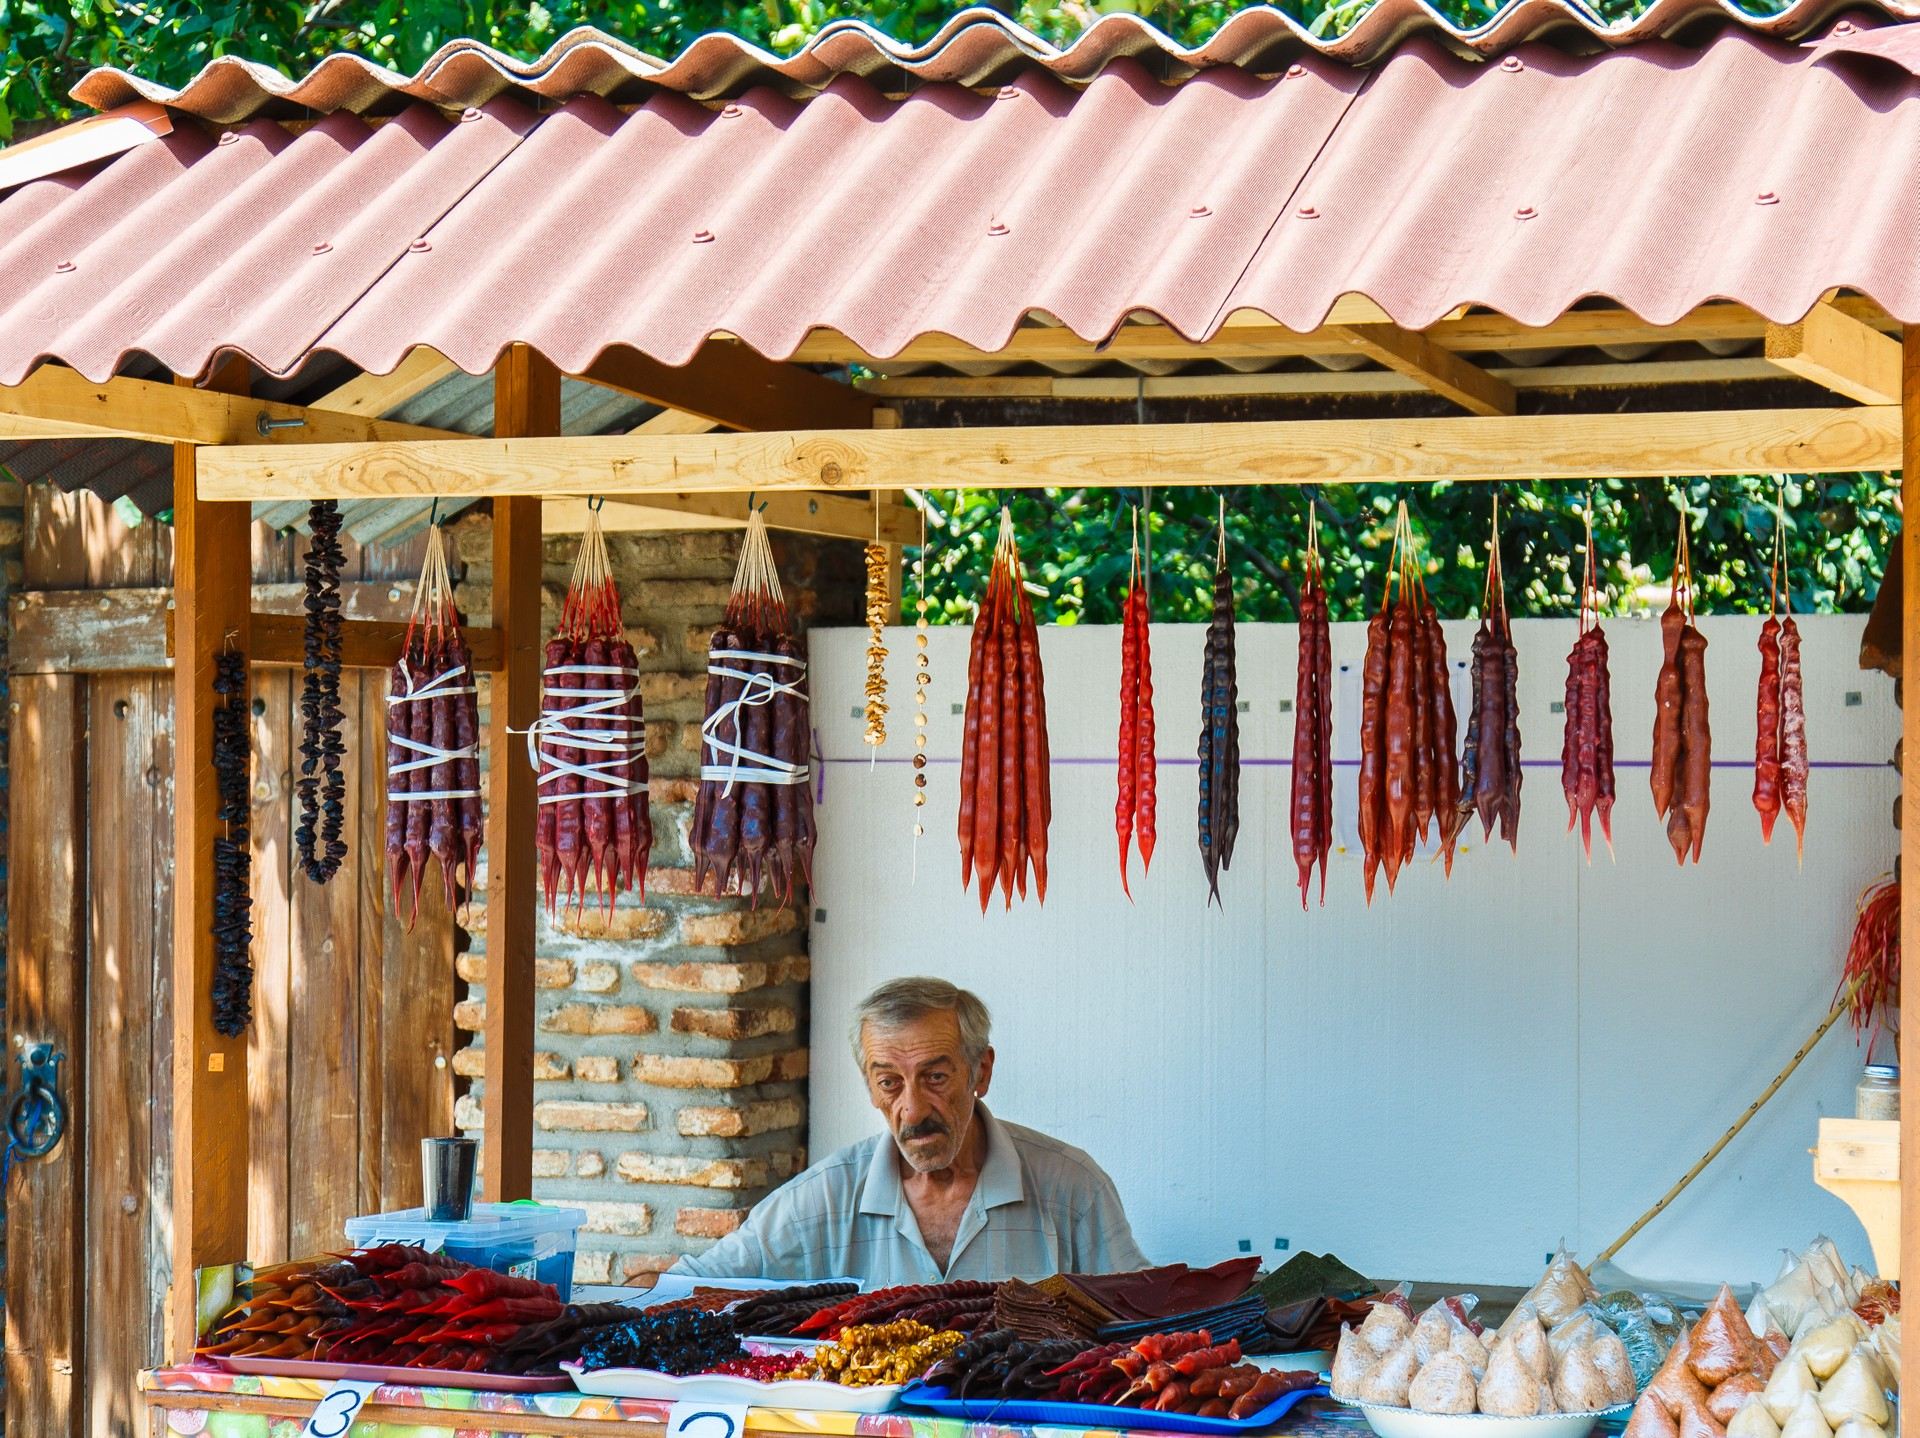 A man selling churchkhela and chestnuts in Tbilisi